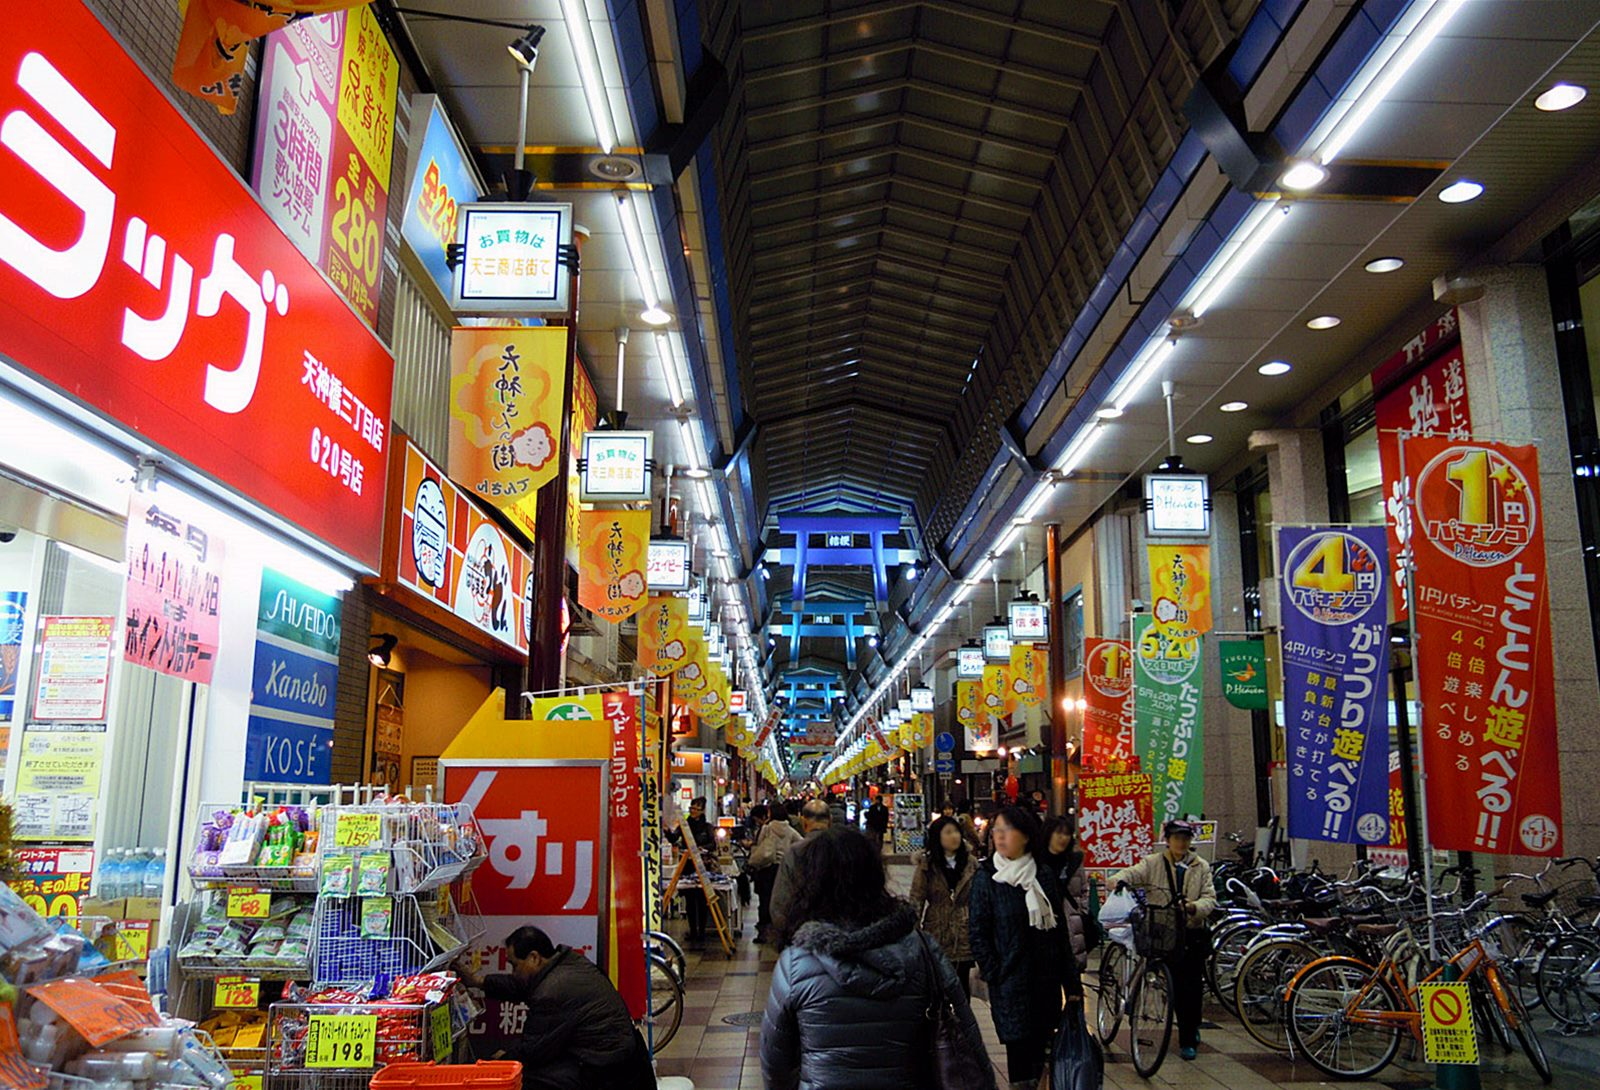 大阪-景點-推薦-天神橋筋商店街-Tenjinbashisuji-Shopping-Street-自由行-必遊-必去-旅遊-觀光-行程-日本-osaka-tourist-attraction-travel